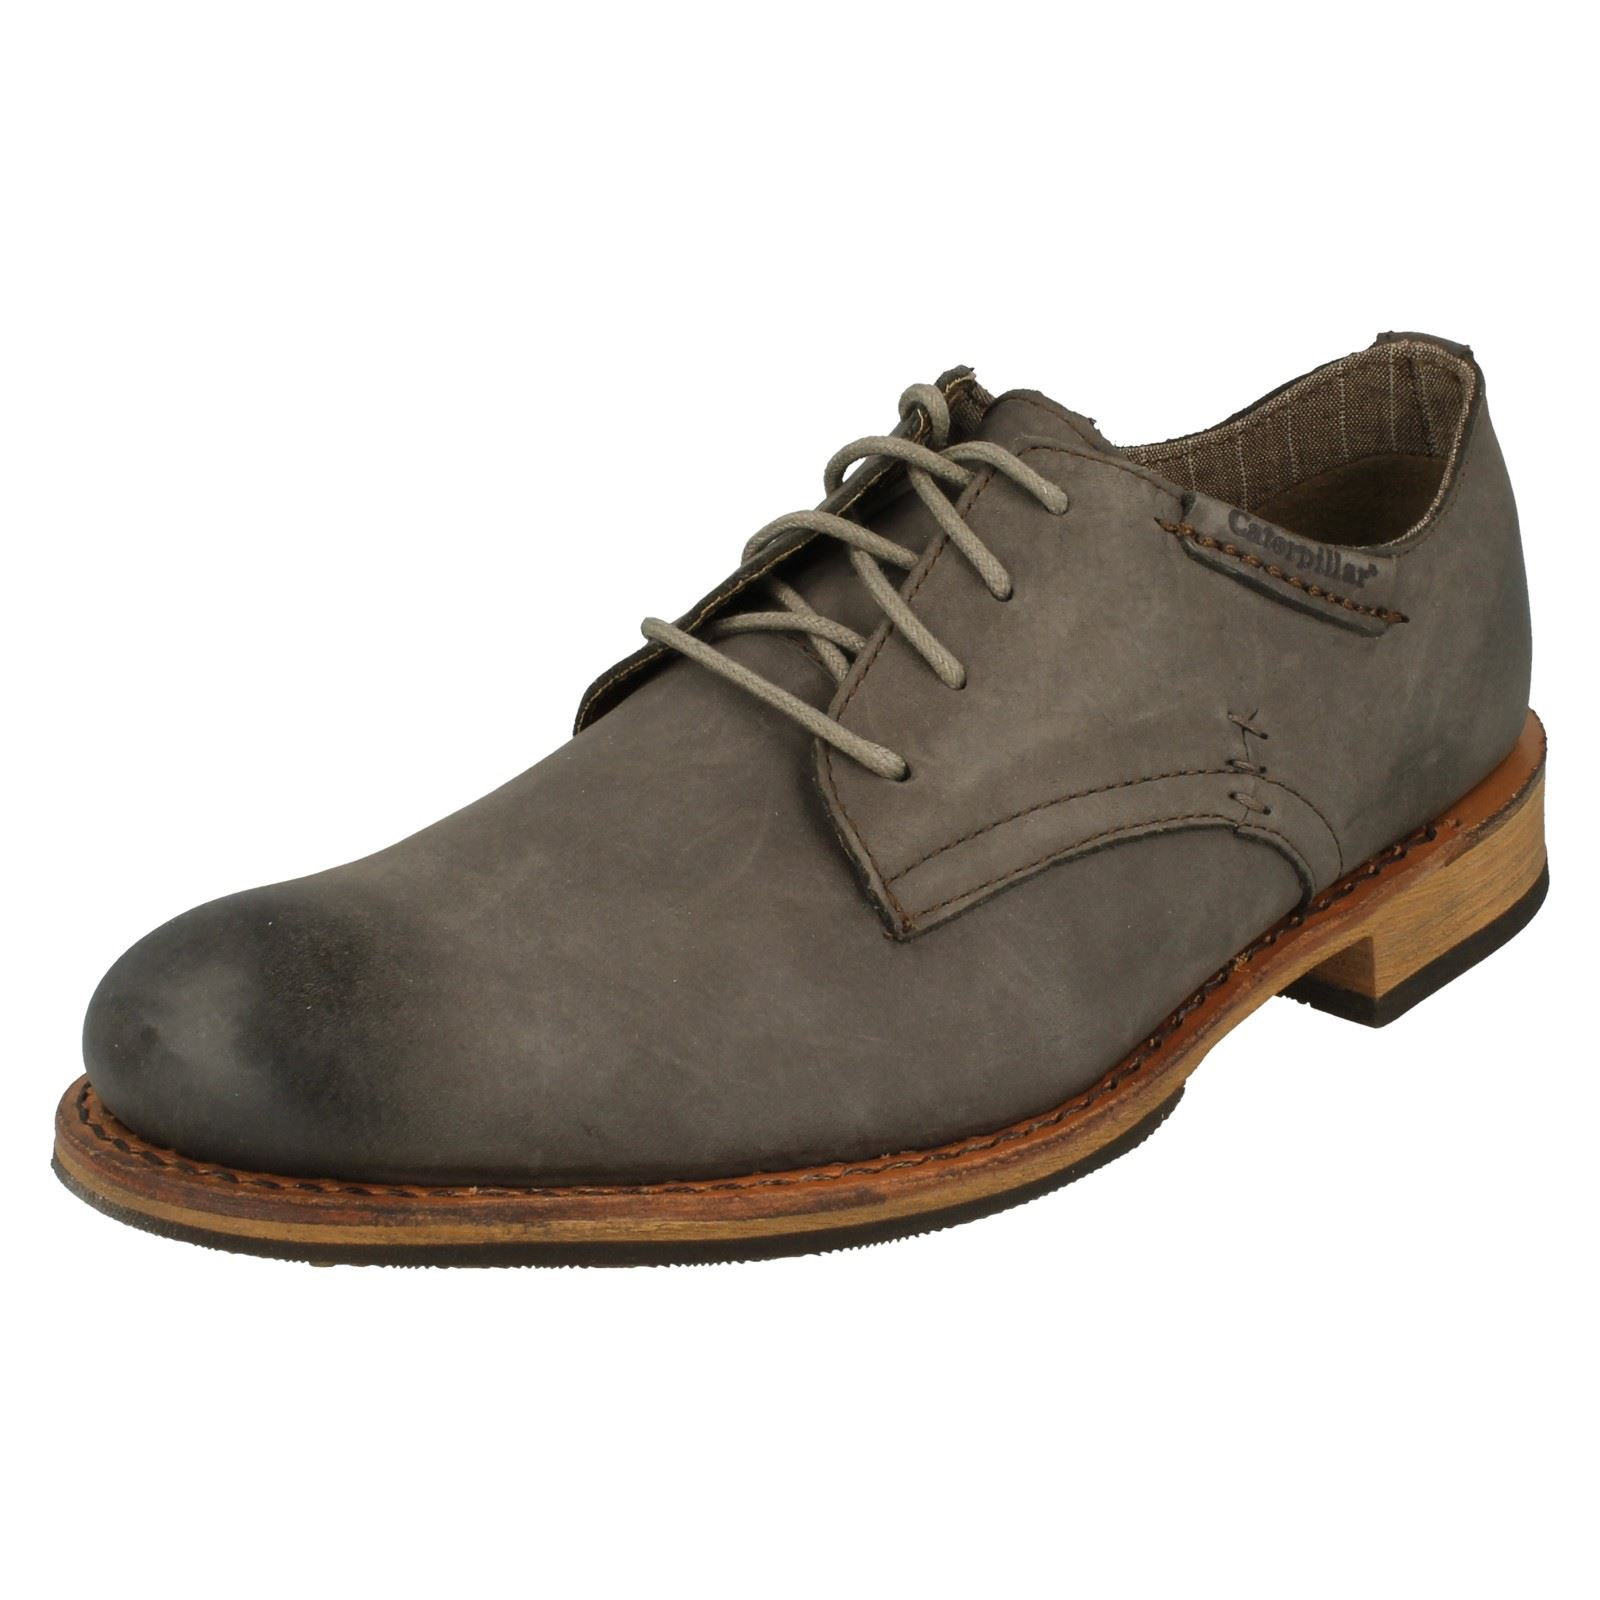 Mens Caterpillar Lace Up Shoes, Miller